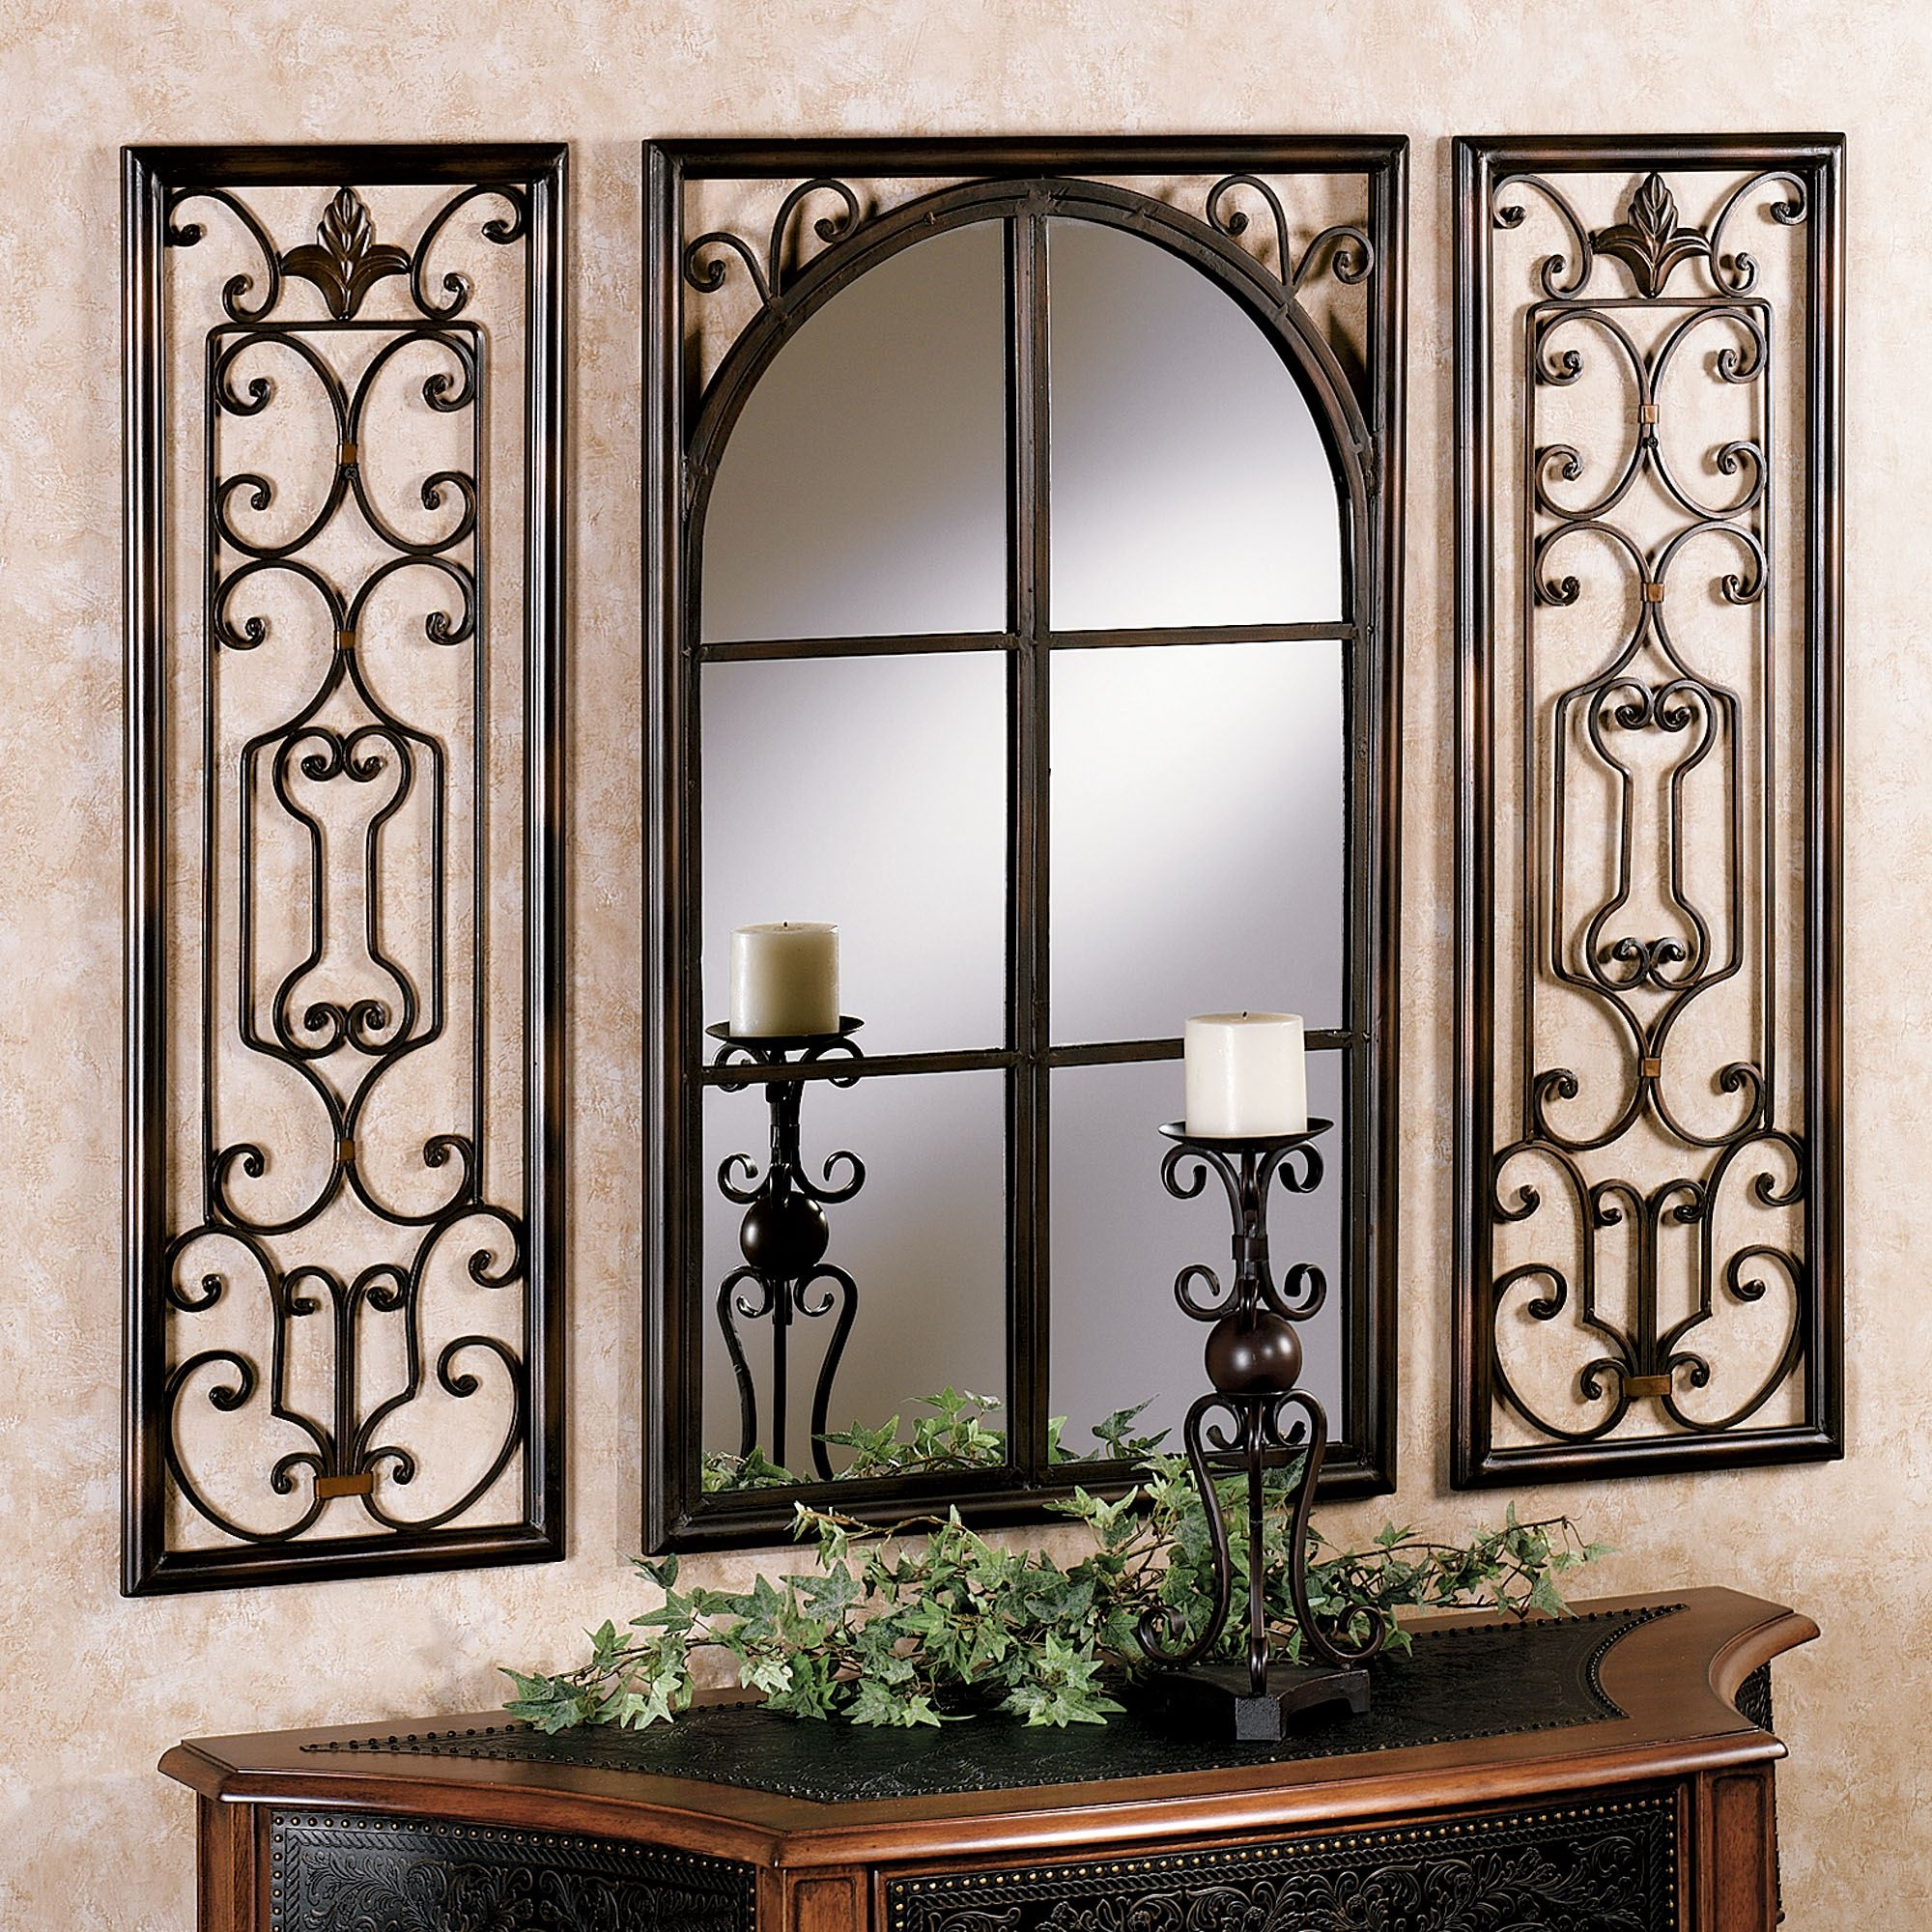 Provence Bronze Finish Wall Mirror Set Intended For Bronze Wall Mirrors (View 8 of 15)